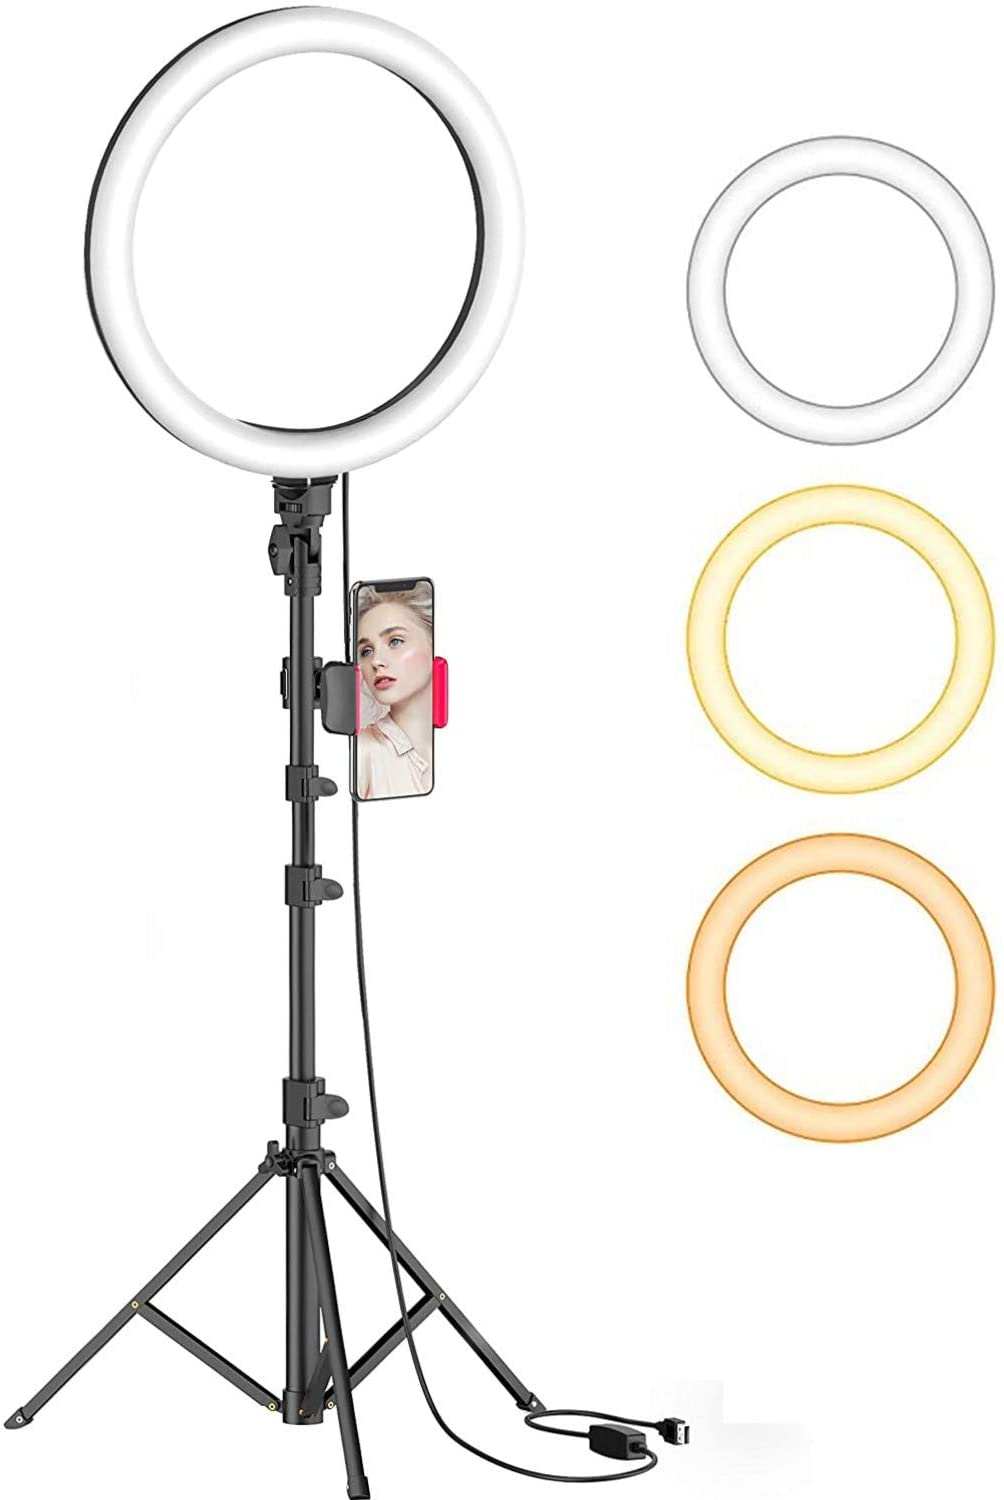 "Innoo Tech Selfie Ring Light, 8"" Ring Light with Tripod Stand & Phone Holder, Dimmable LED Beauty Camera Ring light for Makeup/Photography/YouTube Videos/Live, Compatible with iPhone & Android"